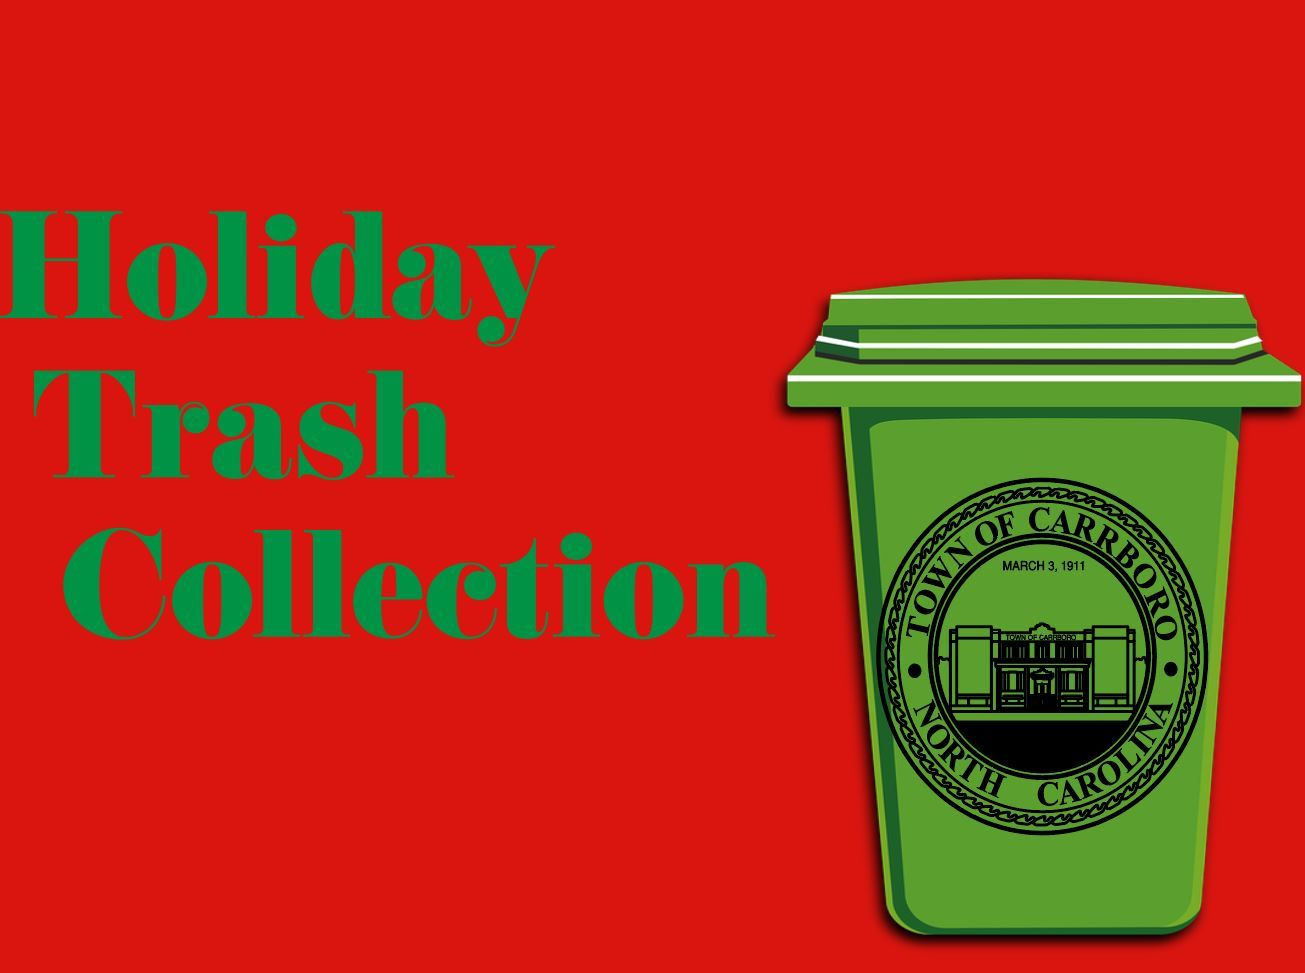 holiday trash collection